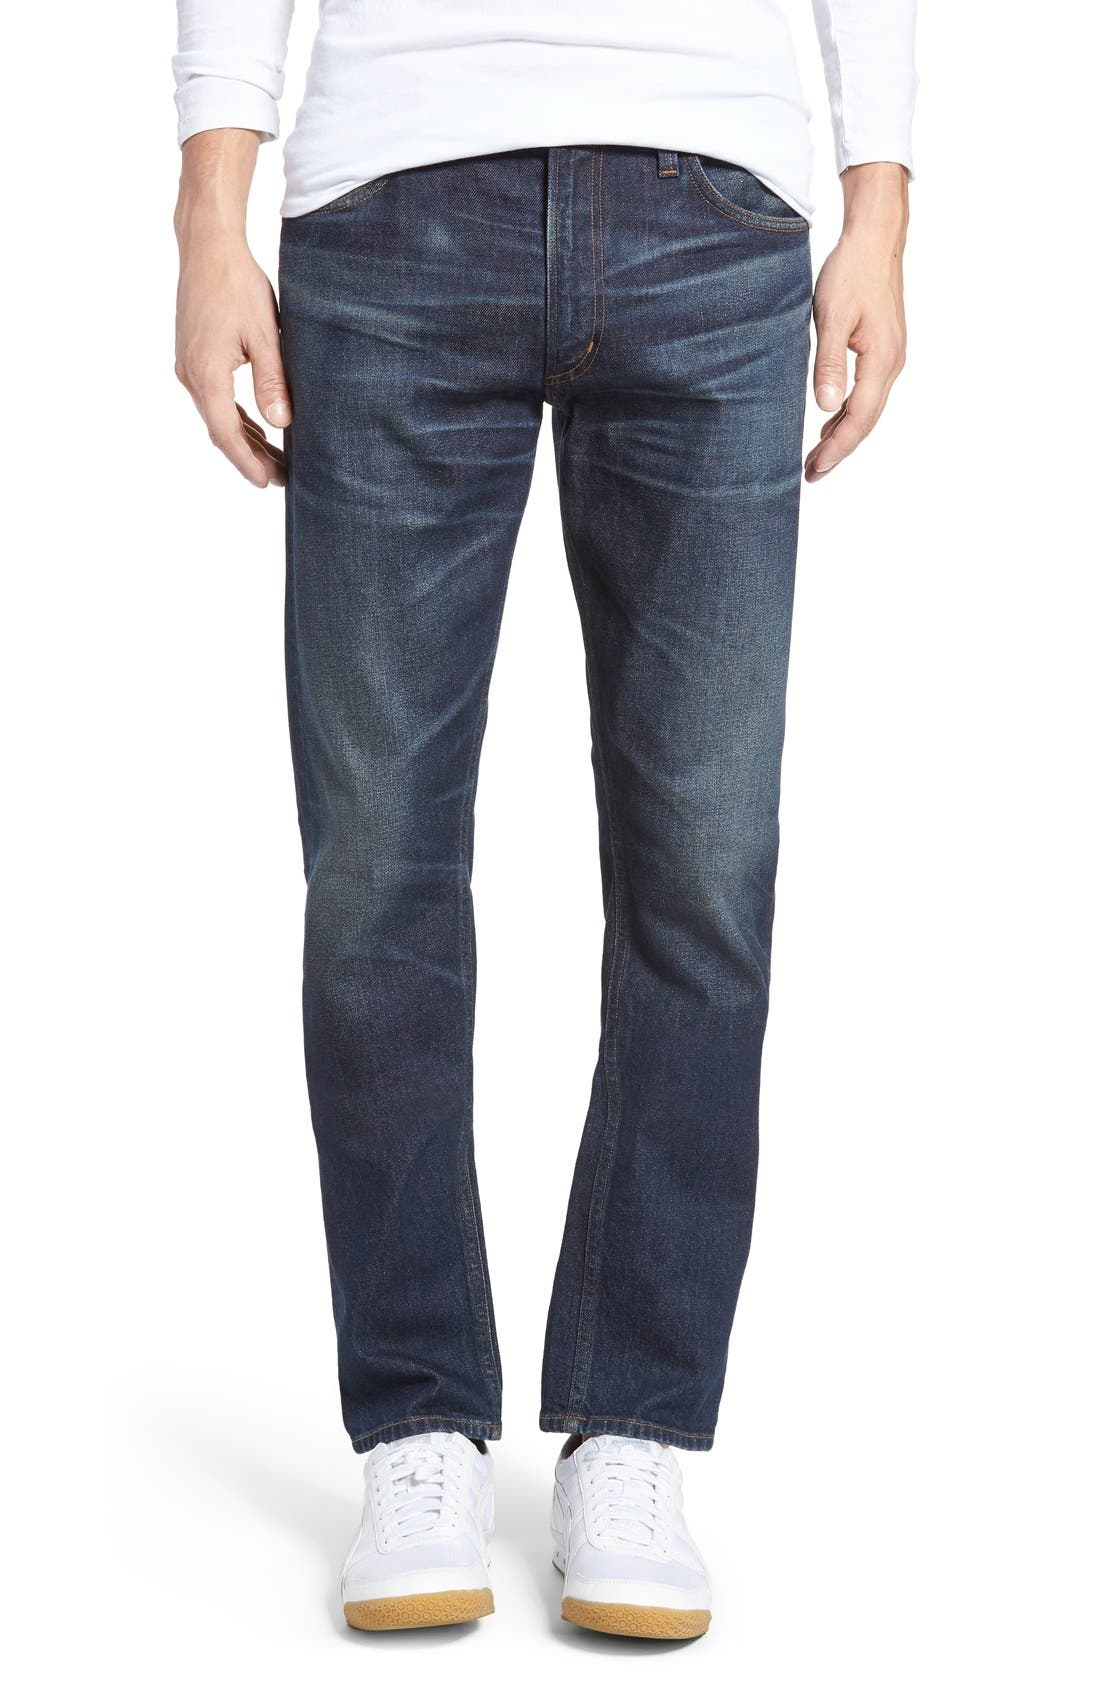 Bowery Slim Fit Jeans,                         Main,                         color, Hesperia